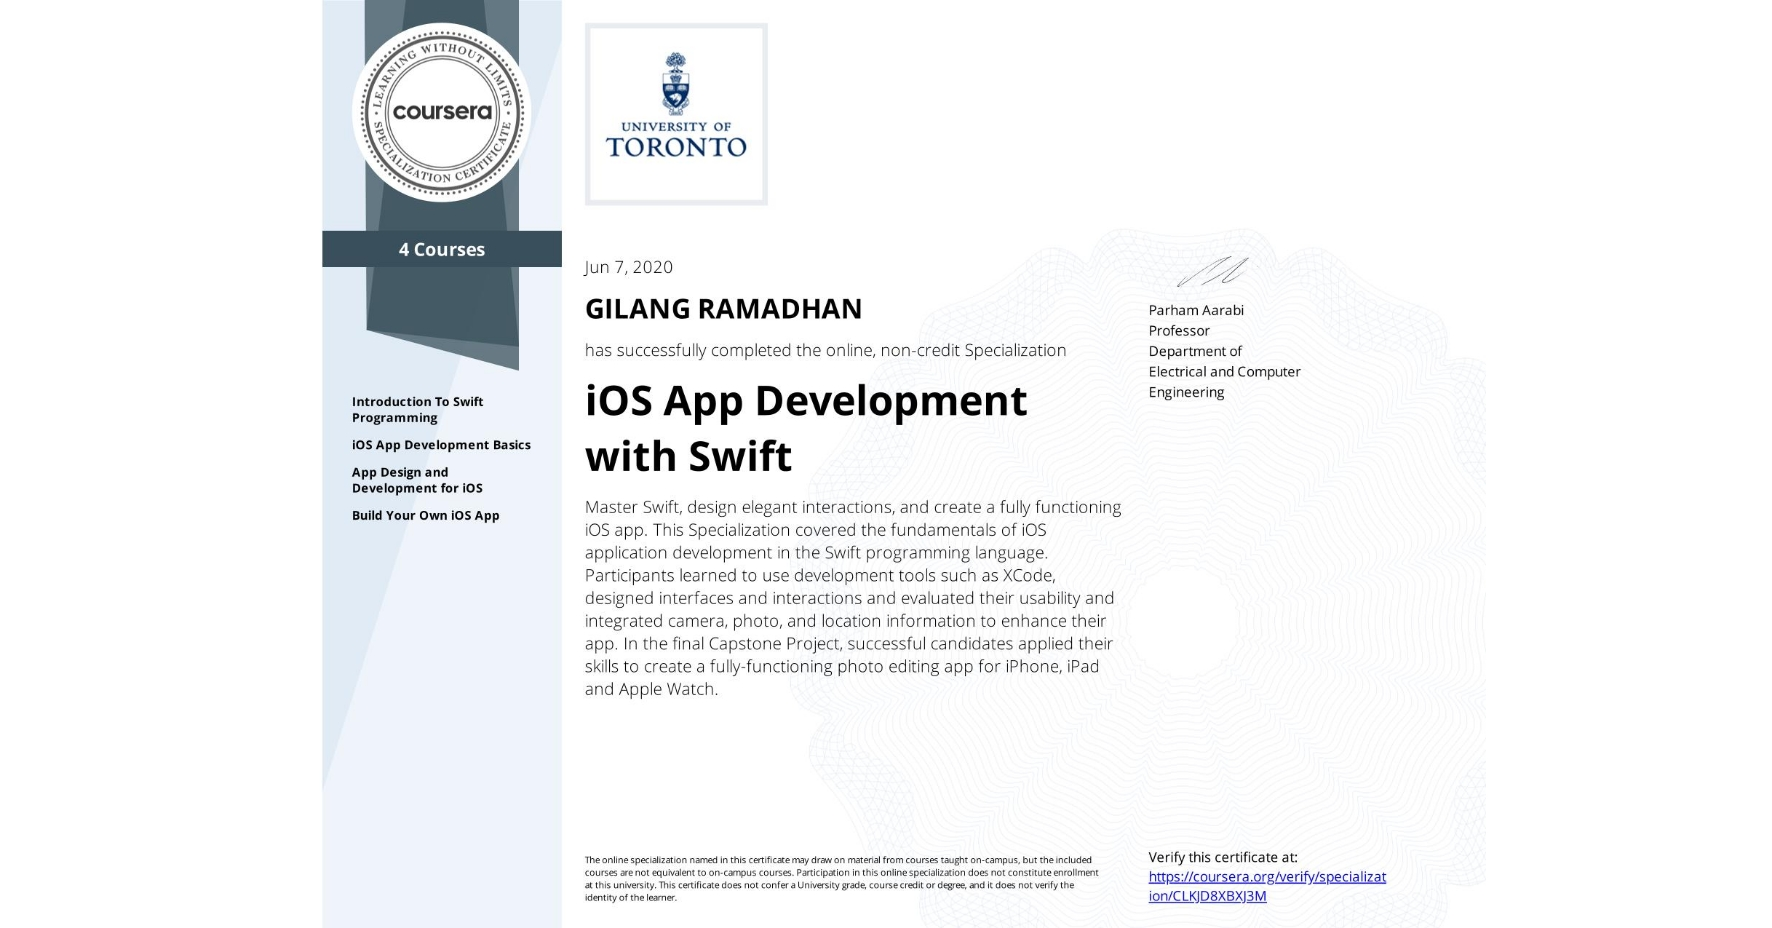 View certificate for Gilang Ramadhan, iOS App Development with Swift, offered through Coursera. Master Swift, design elegant interactions, and create a fully functioning iOS app.  This Specialization covered the fundamentals of iOS application development in the Swift programming language. Participants learned to use development tools such as XCode, designed interfaces and interactions and evaluated their usability and integrated camera, photo, and location information to enhance their app. In the final Capstone Project, successful candidates applied their skills to create a fully-functioning photo editing app for iPhone, iPad and Apple Watch.